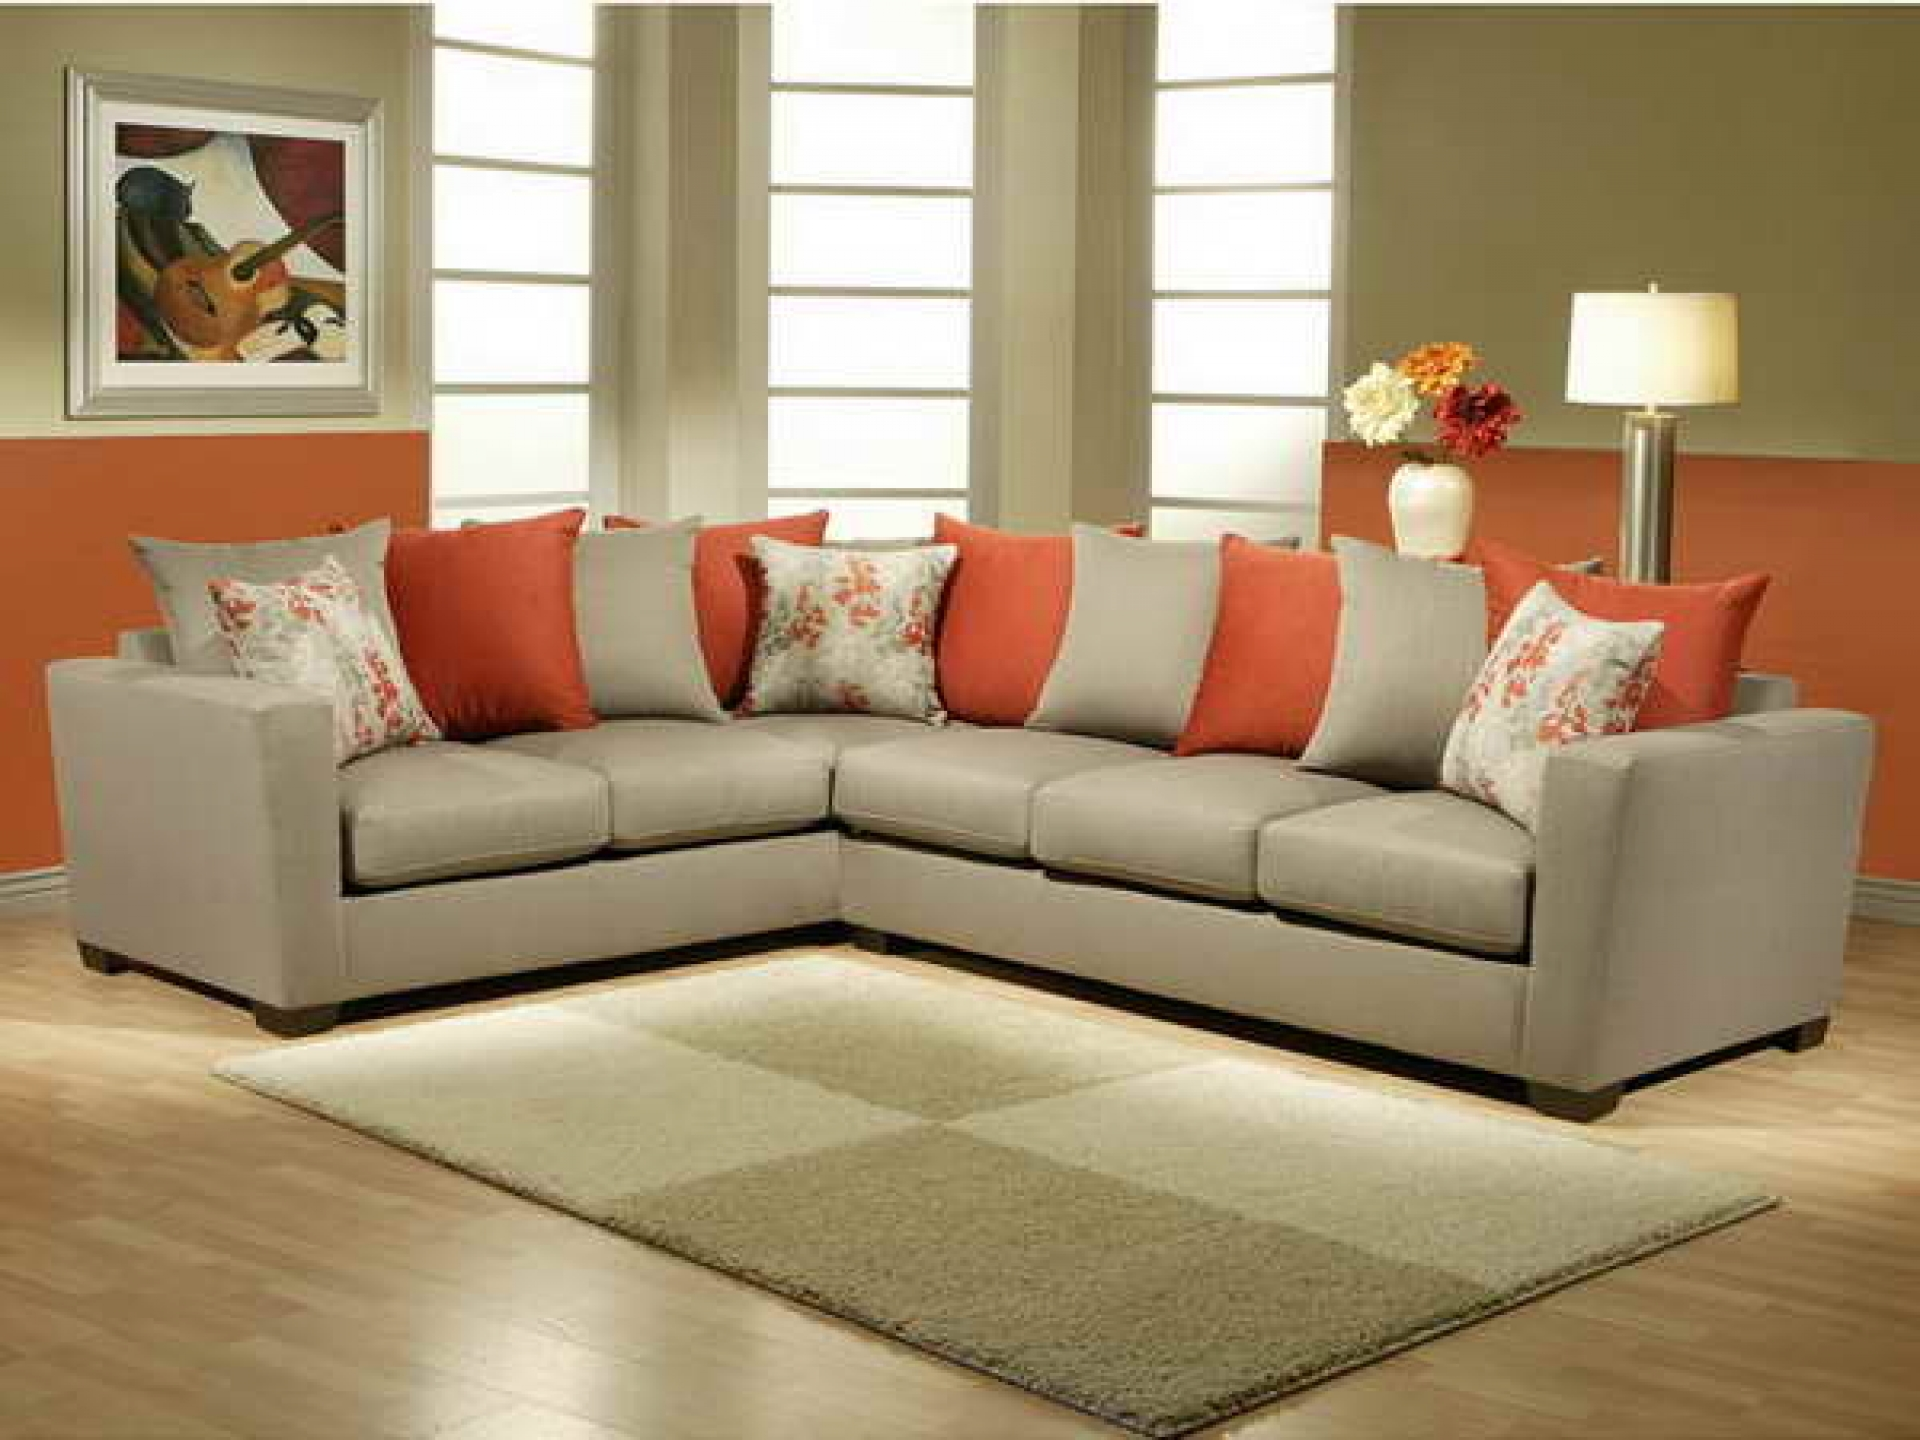 orange pillows for sofa home the honoroak. Black Bedroom Furniture Sets. Home Design Ideas